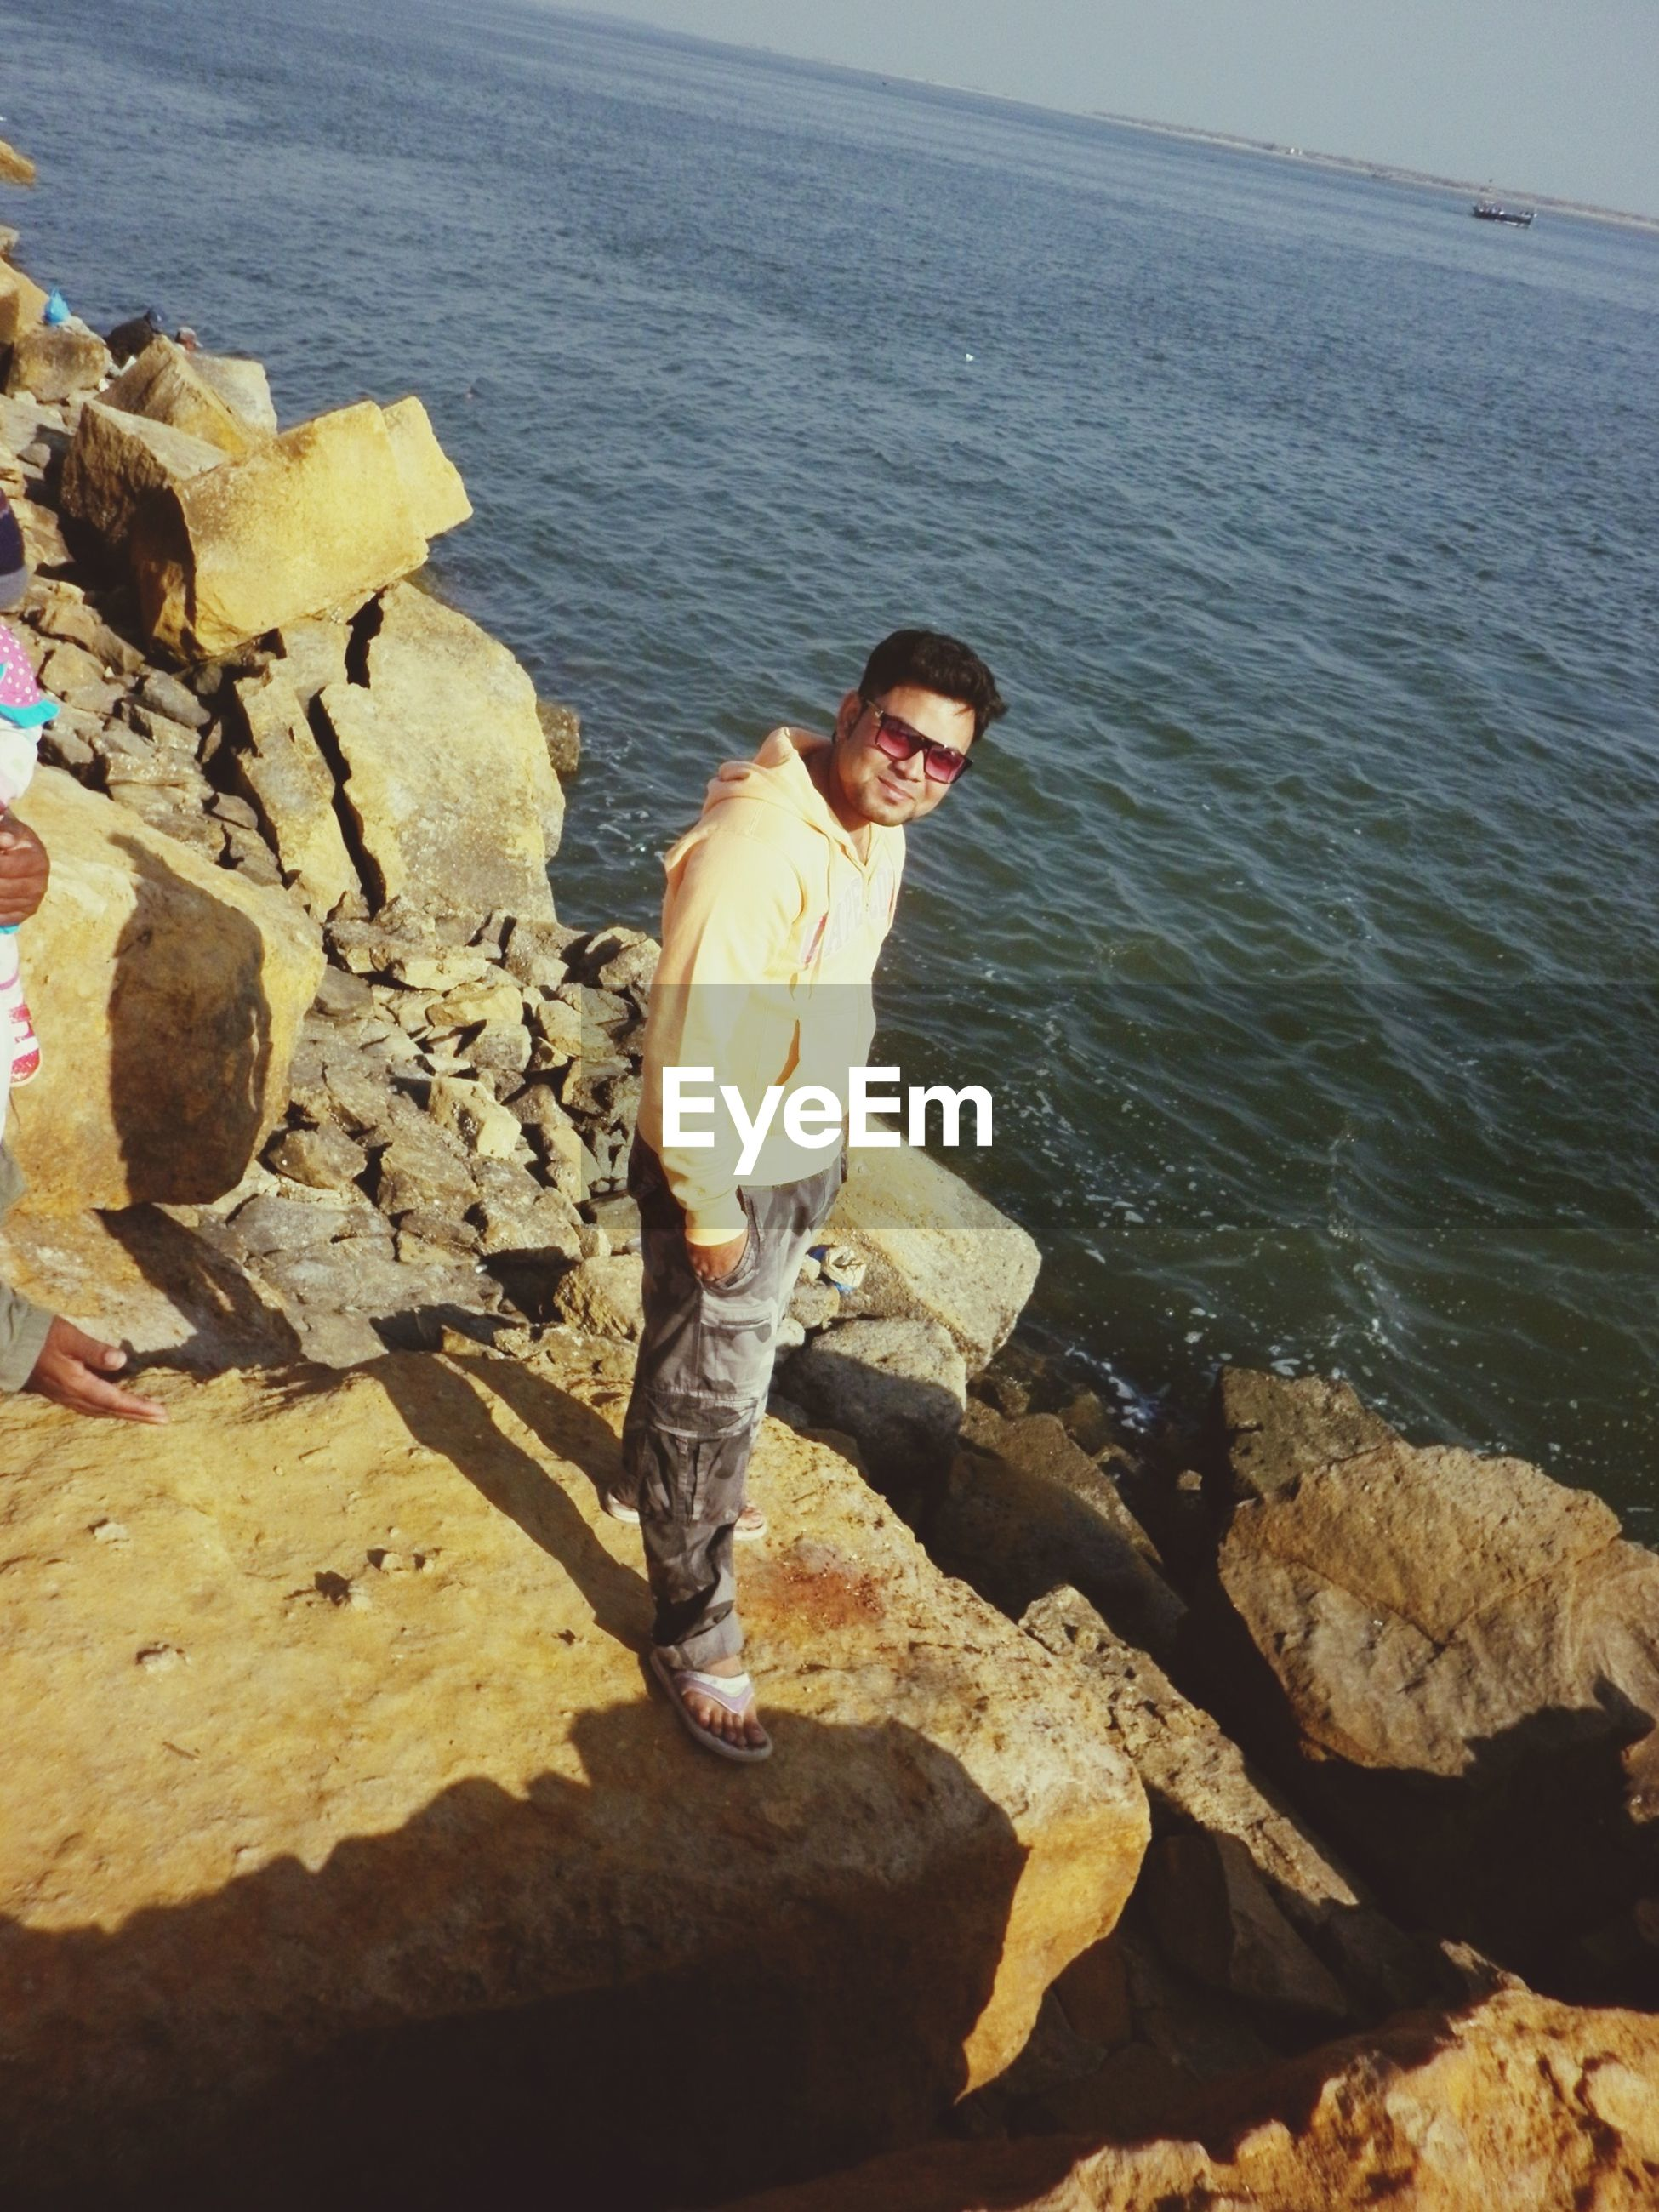 lifestyles, water, leisure activity, rock - object, full length, sea, standing, casual clothing, nature, vacations, rock, outdoors, young adult, rock formation, person, sunlight, shore, high angle view